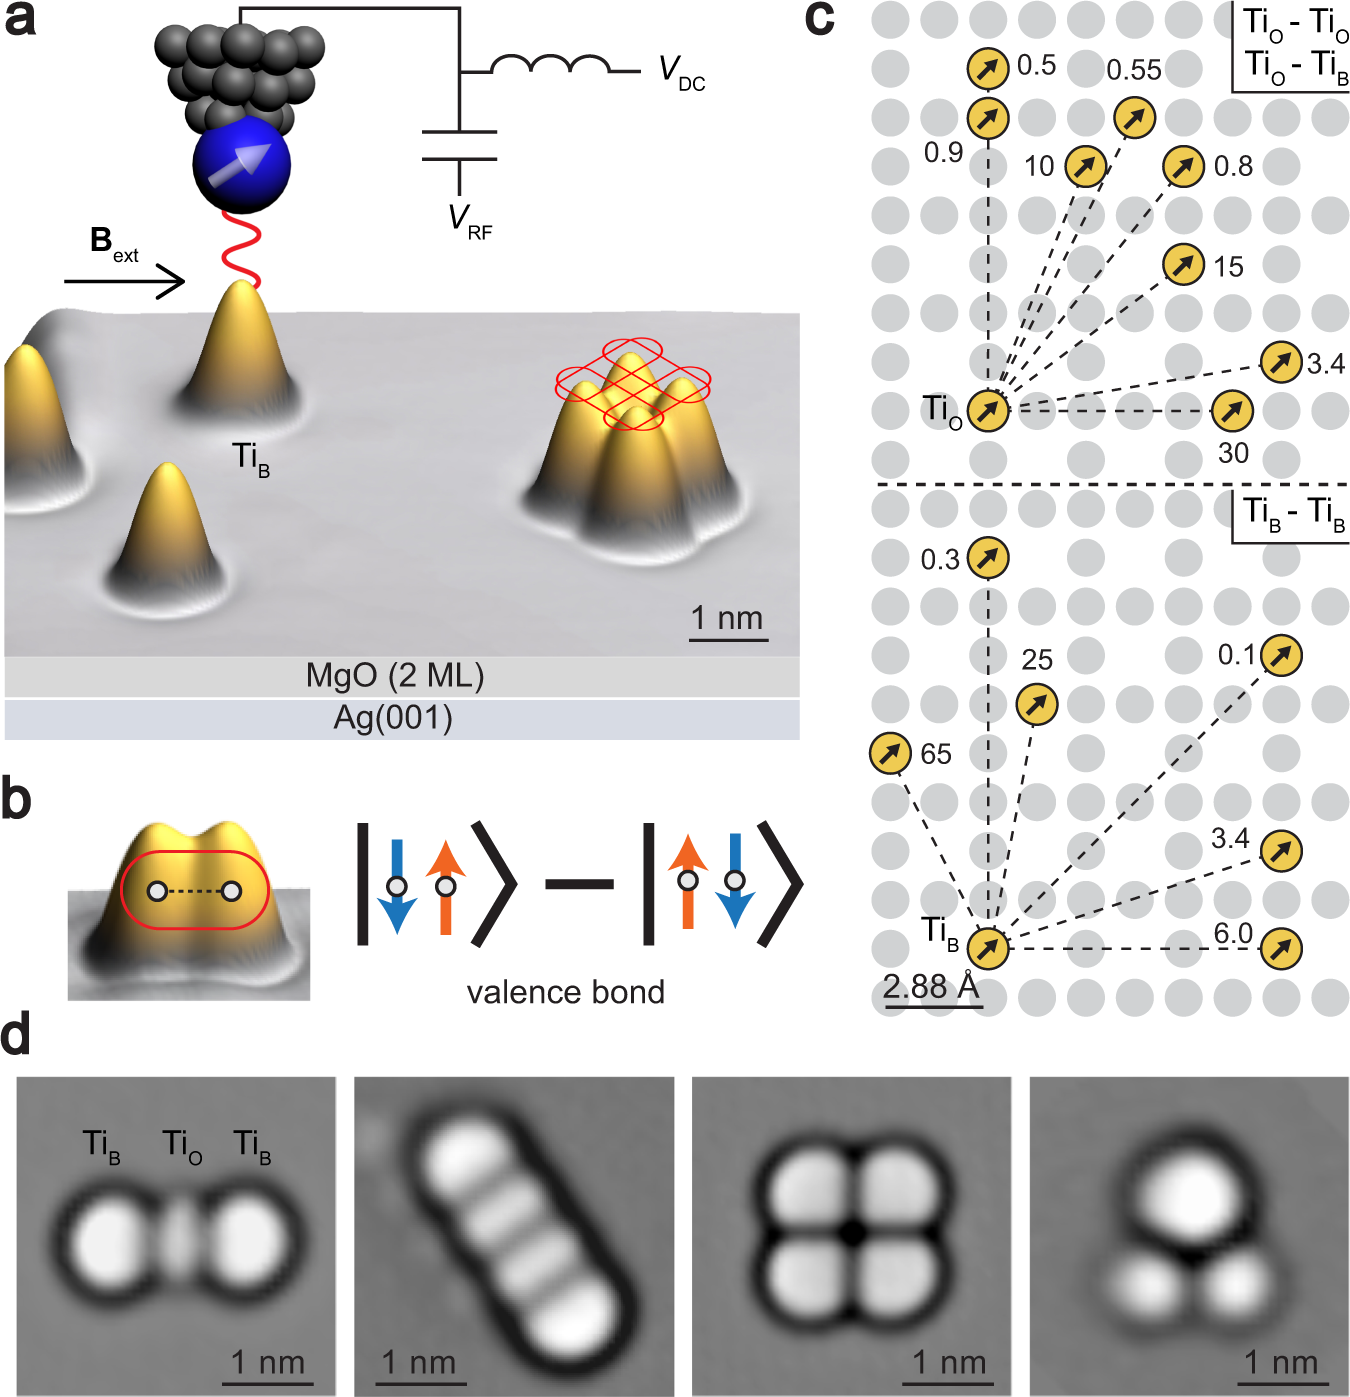 Probing Resonating Valence Bond States In Artificial Quantum Magnets Nature Communications